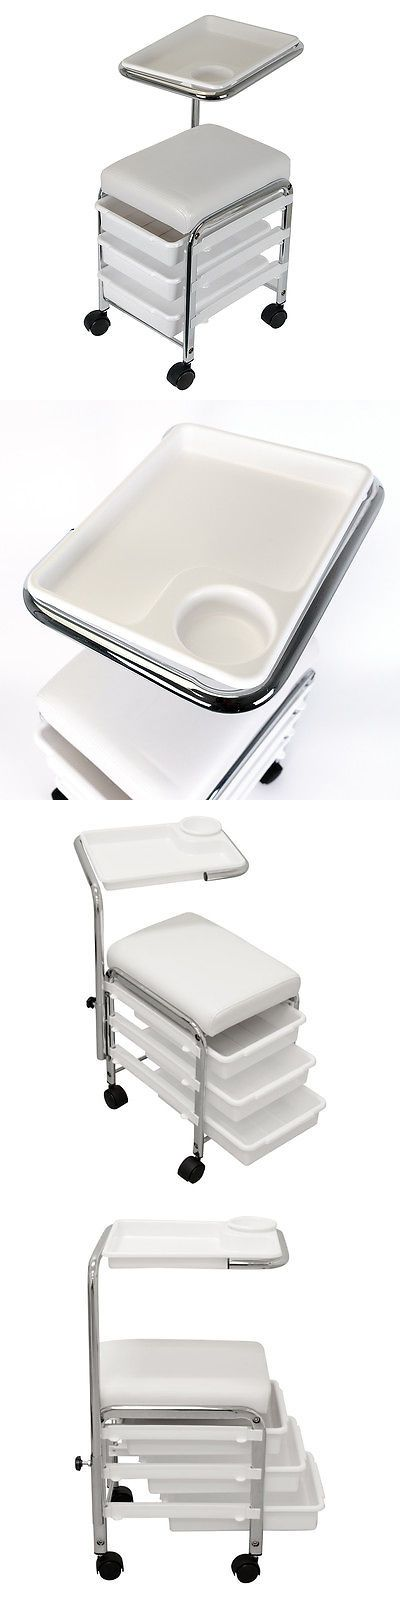 Stylist Stations and Furniture: White Pedicure Manicure Nail Salon Spa Cart Trolley Stool Chair W/ Shelves BUY IT NOW ONLY: $51.99